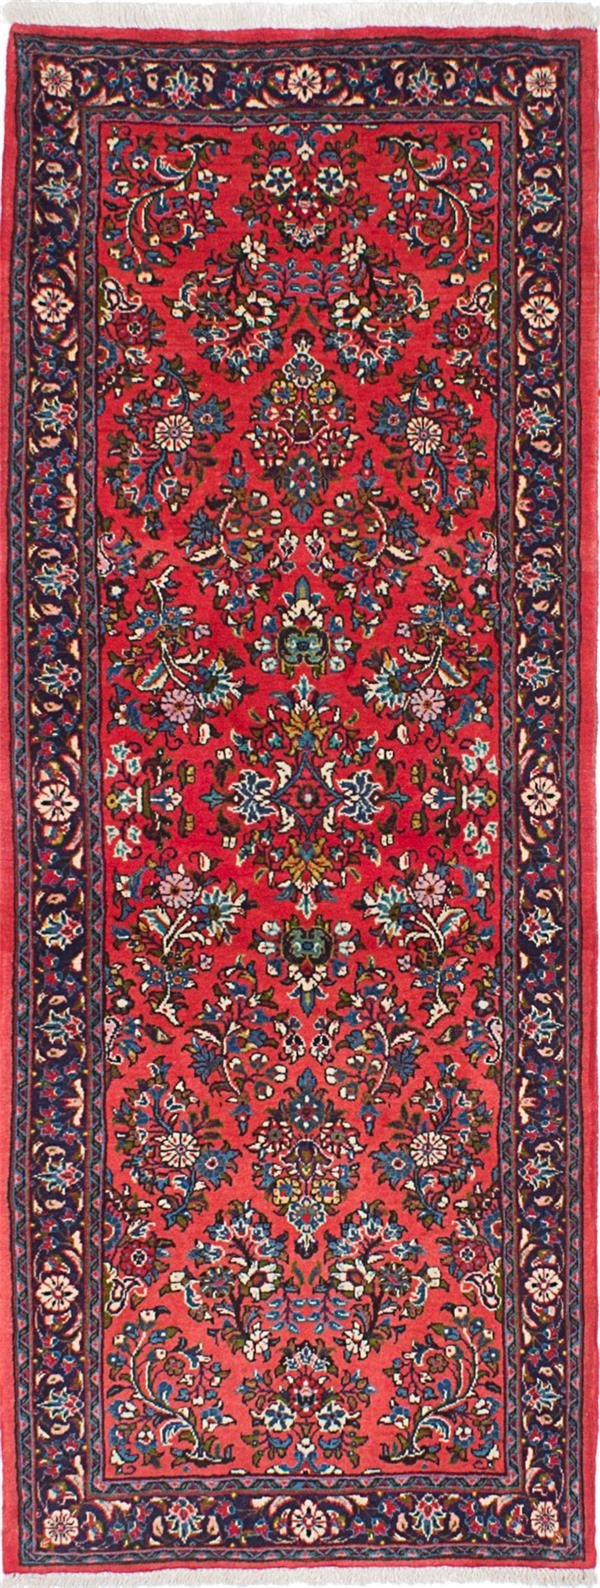 304 Best Rugs Images On Pinterest Inside Red Wool Rugs (View 14 of 15)